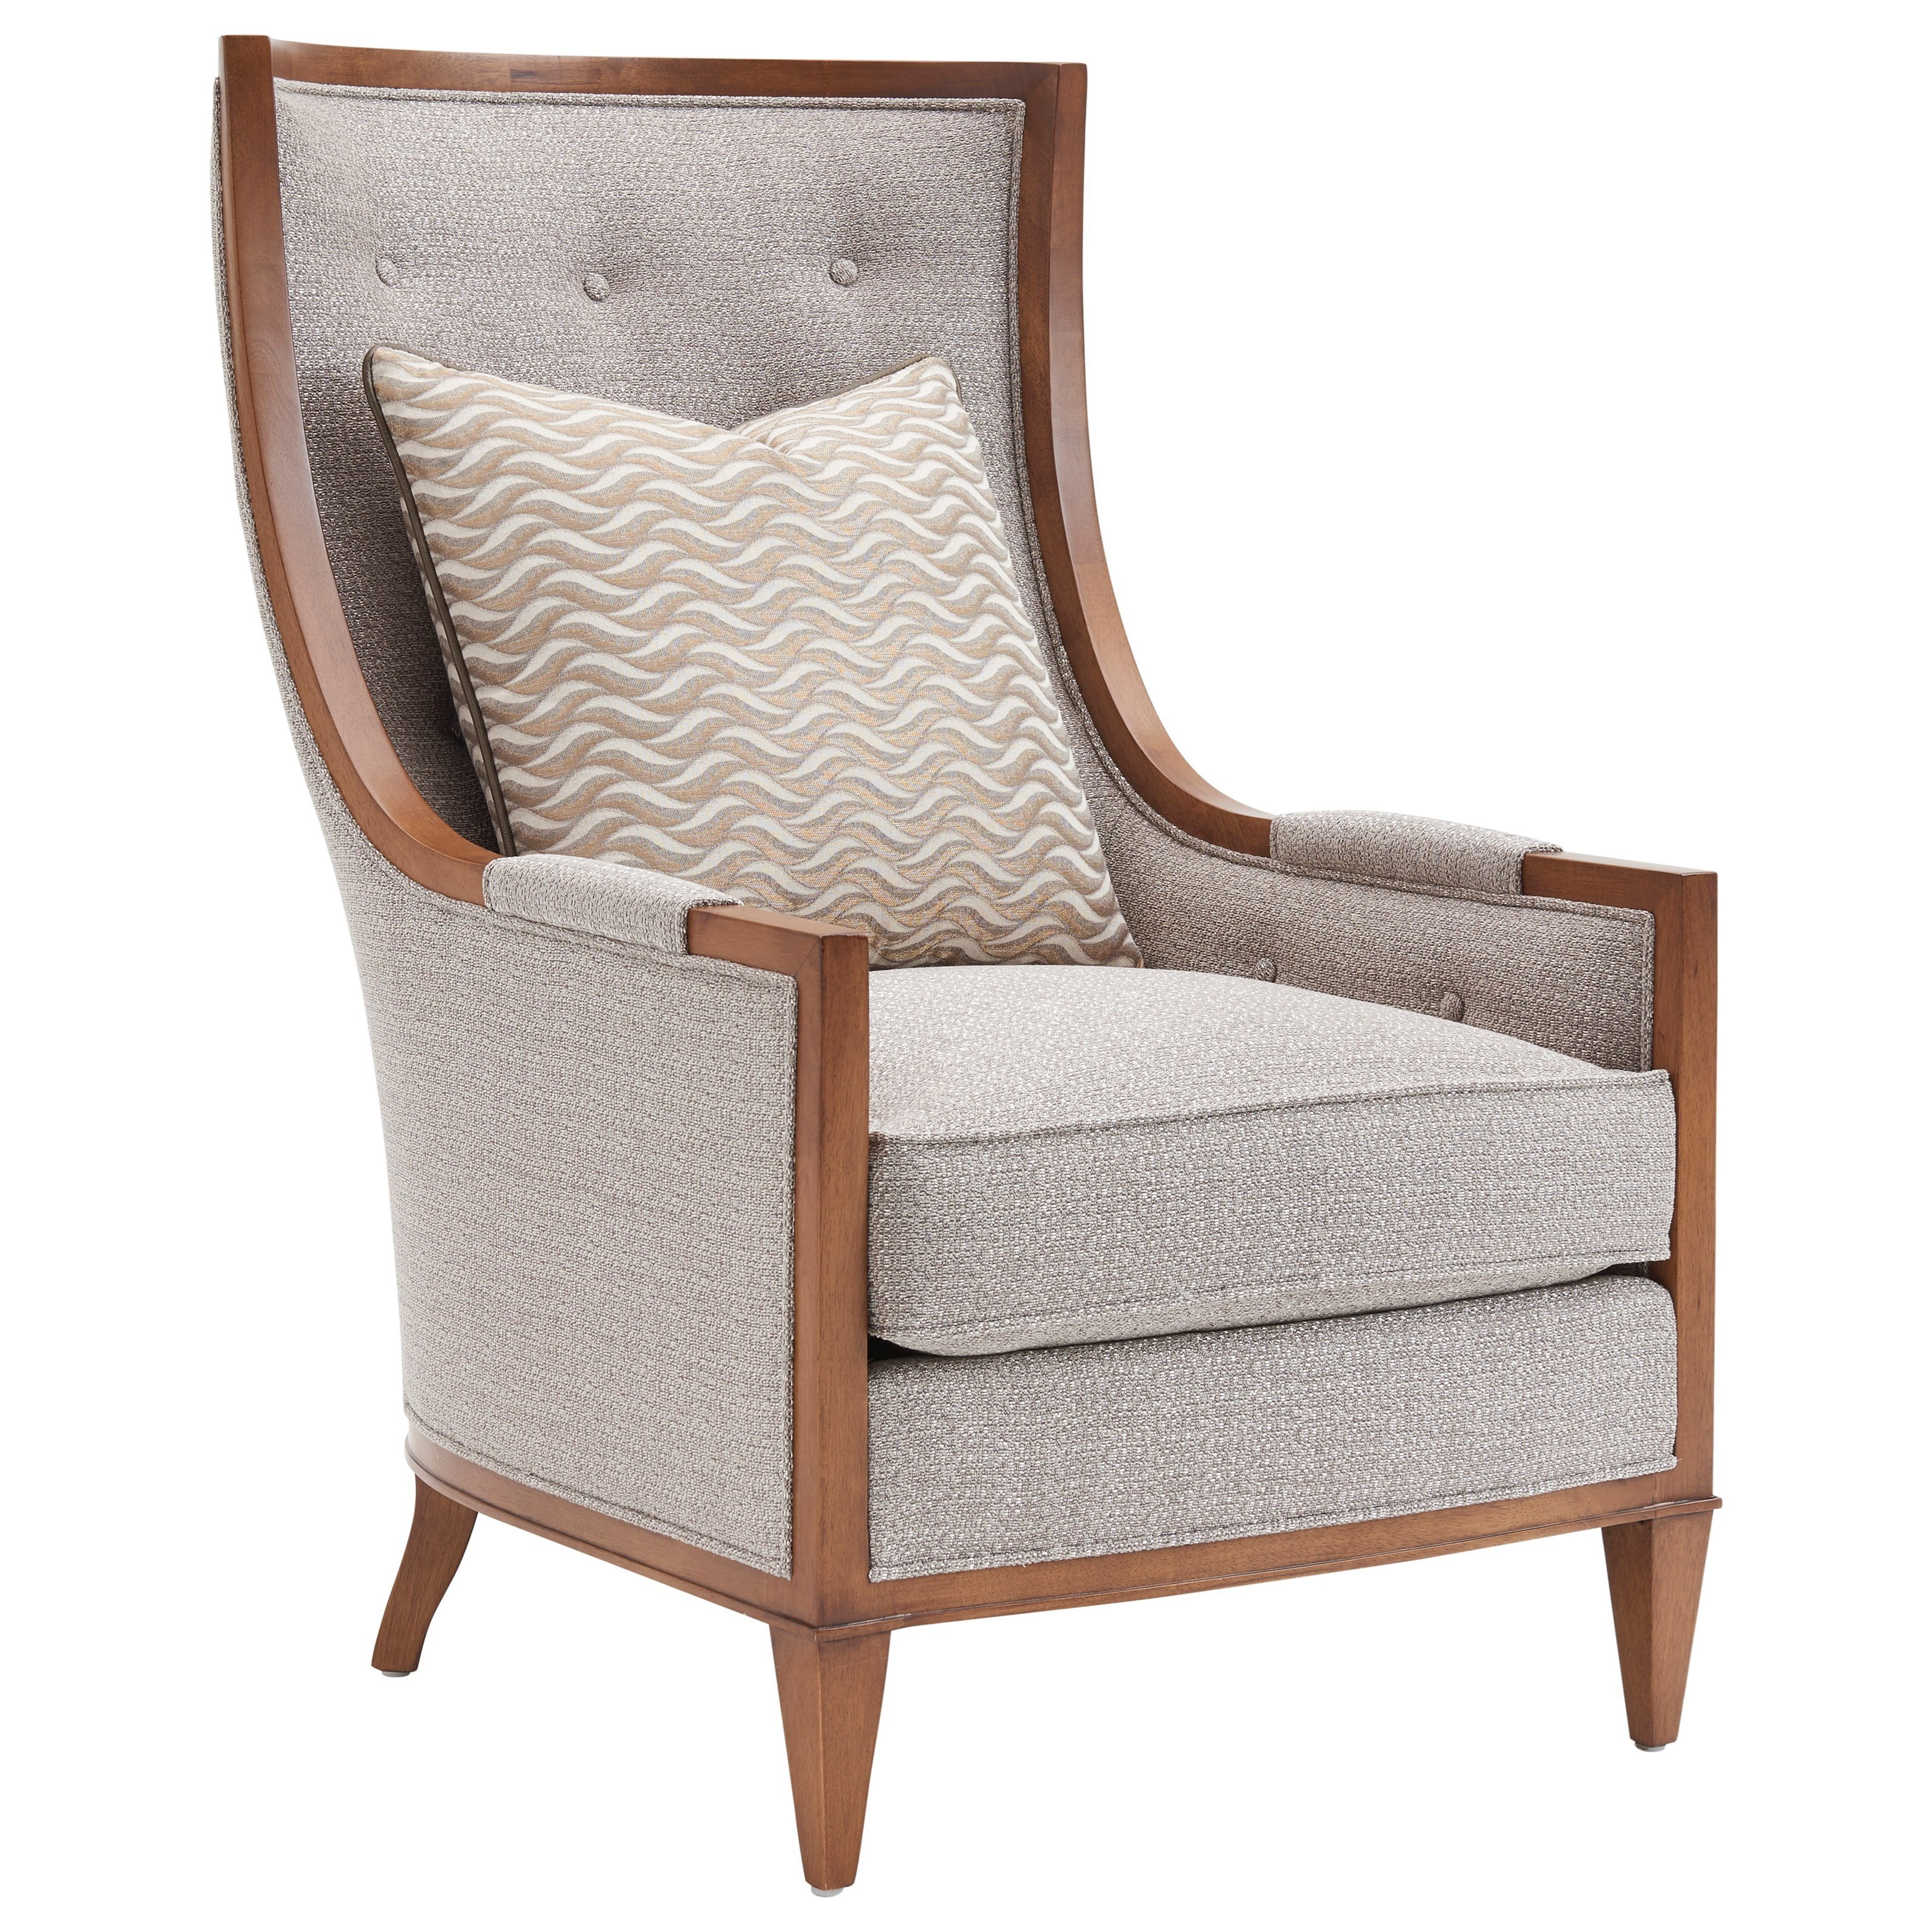 Lexington Tower Place Contemporary Greenwood Wing Chair With Button Tufting  And Exposed Wood Trim